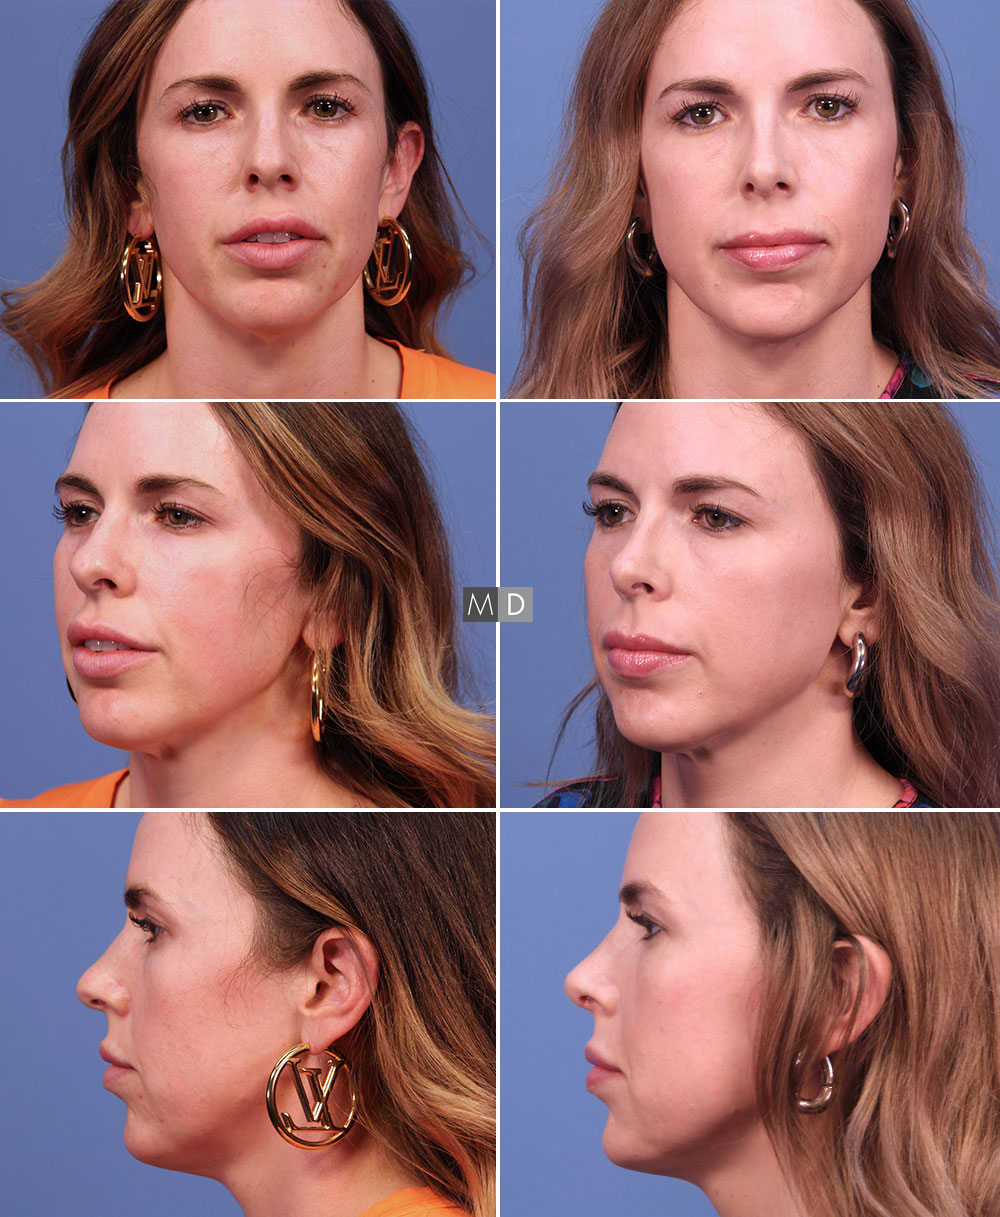 Dr Mark Deuber MD Rhinoplasty Before and After